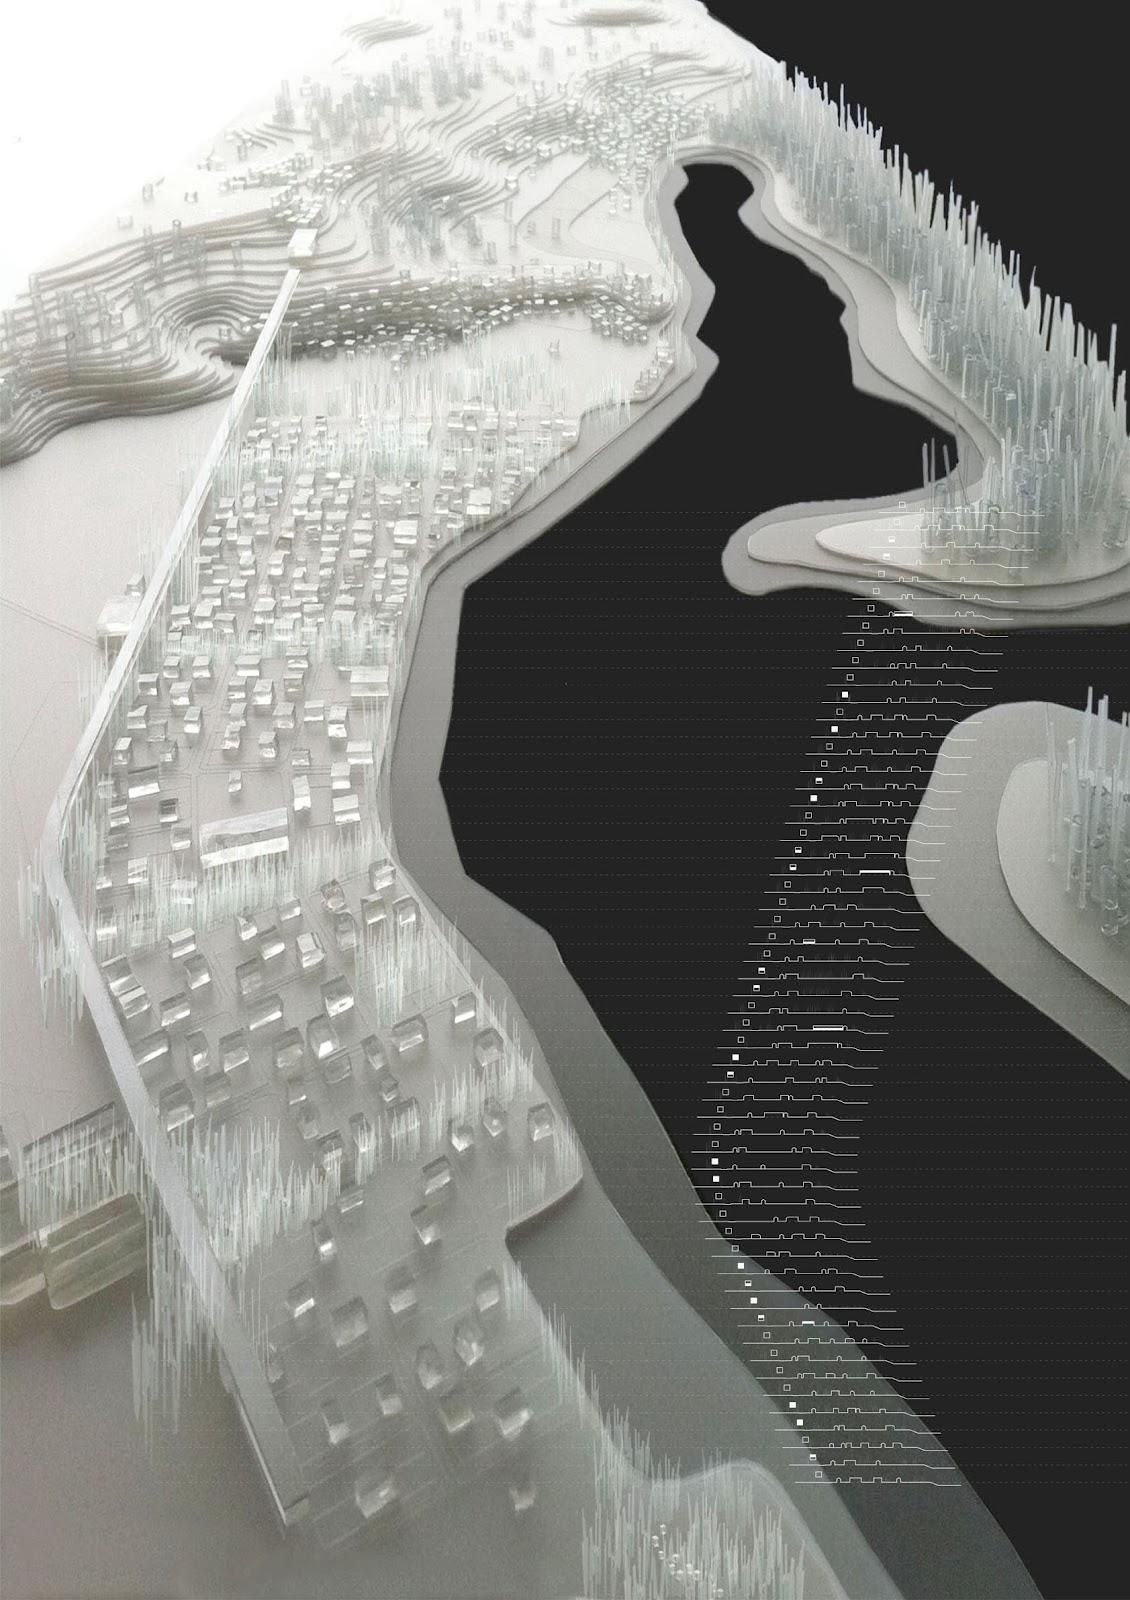 pinrebecca habtour on architectural models & drawings